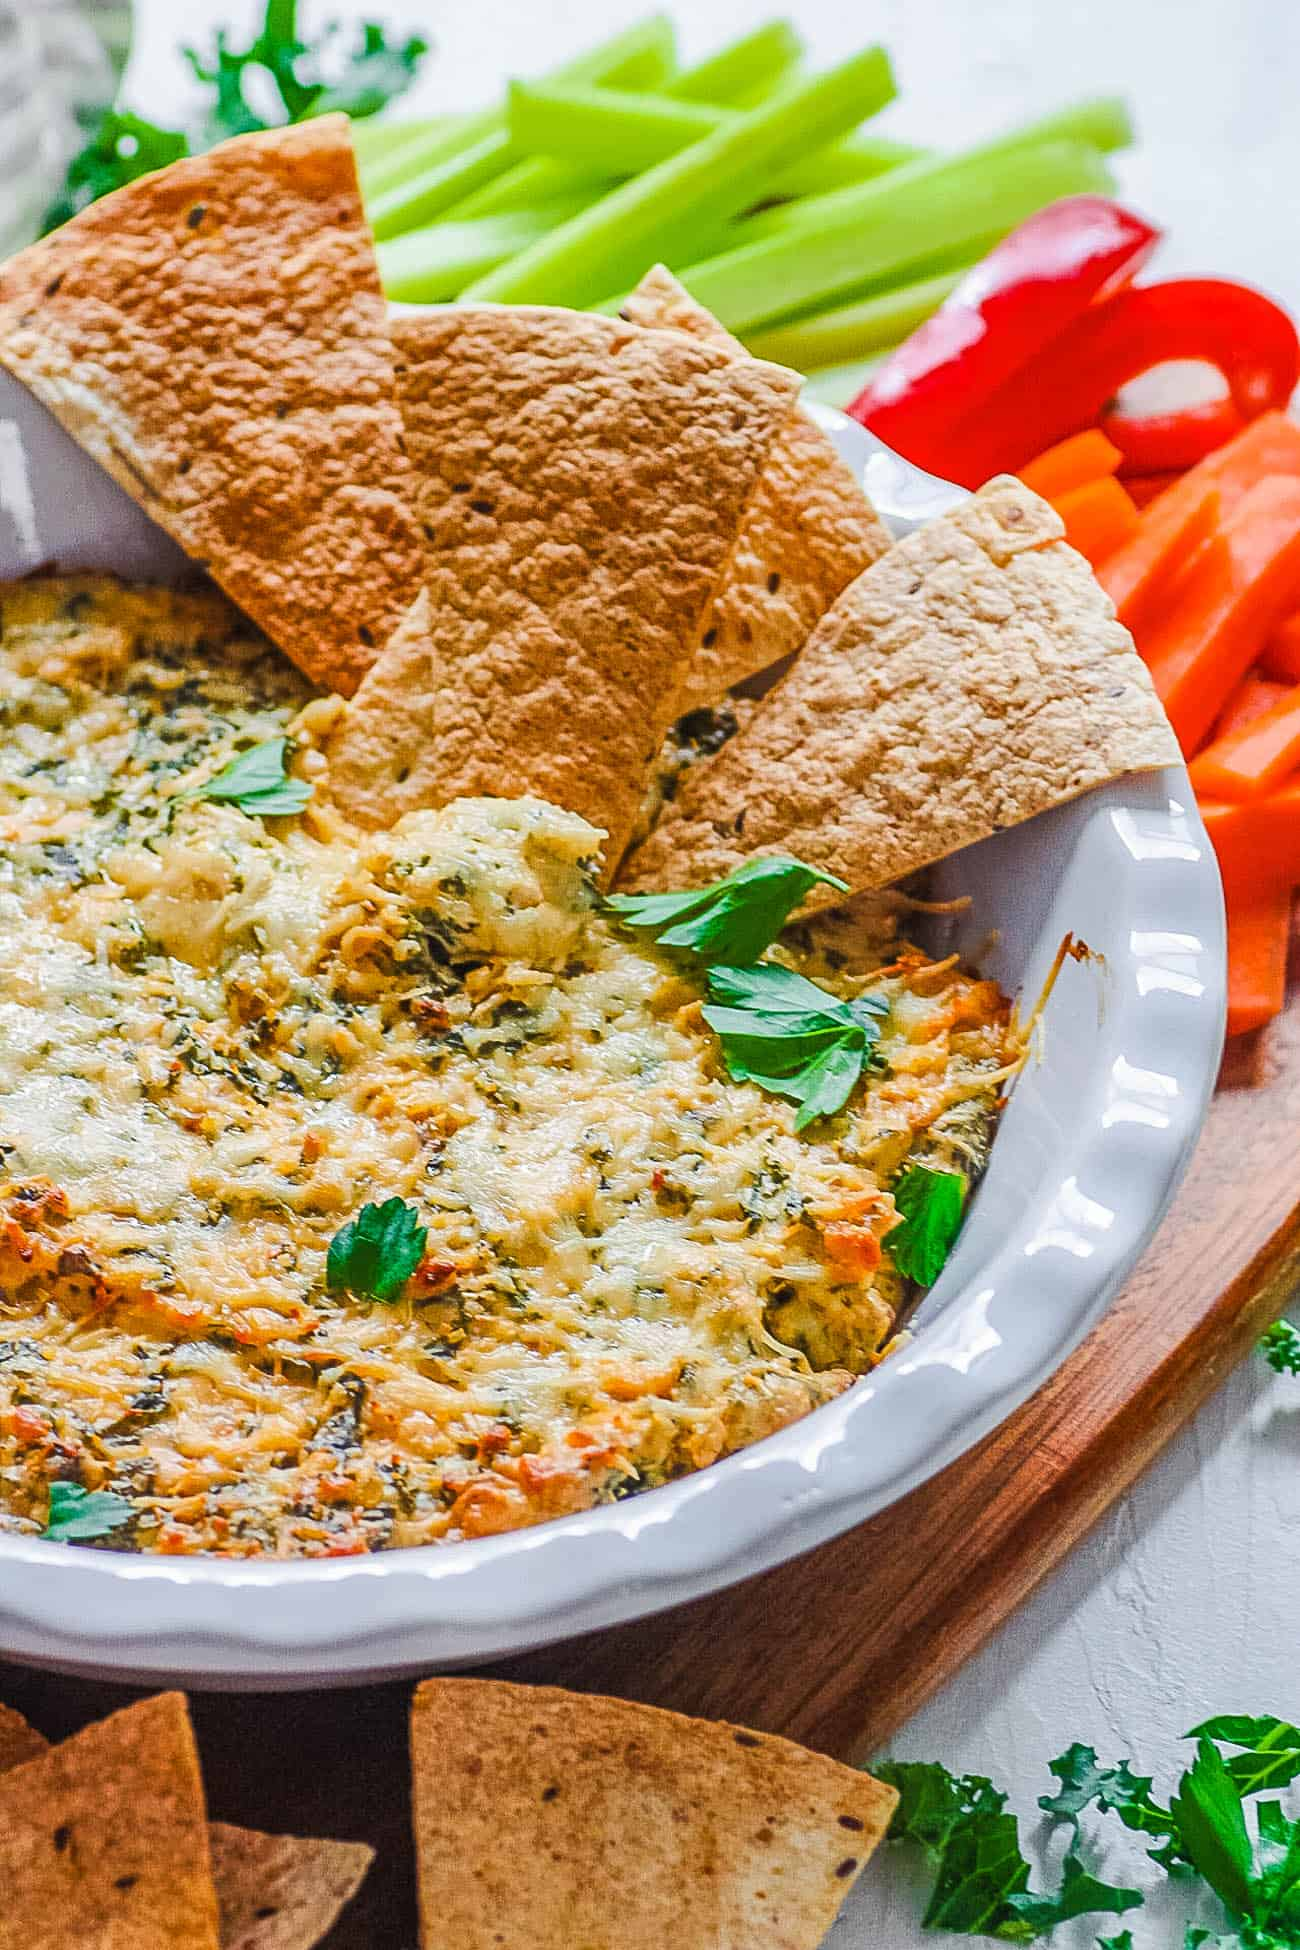 healthy cheese dip - easy kale dip recipe with pita chips in a white bowl